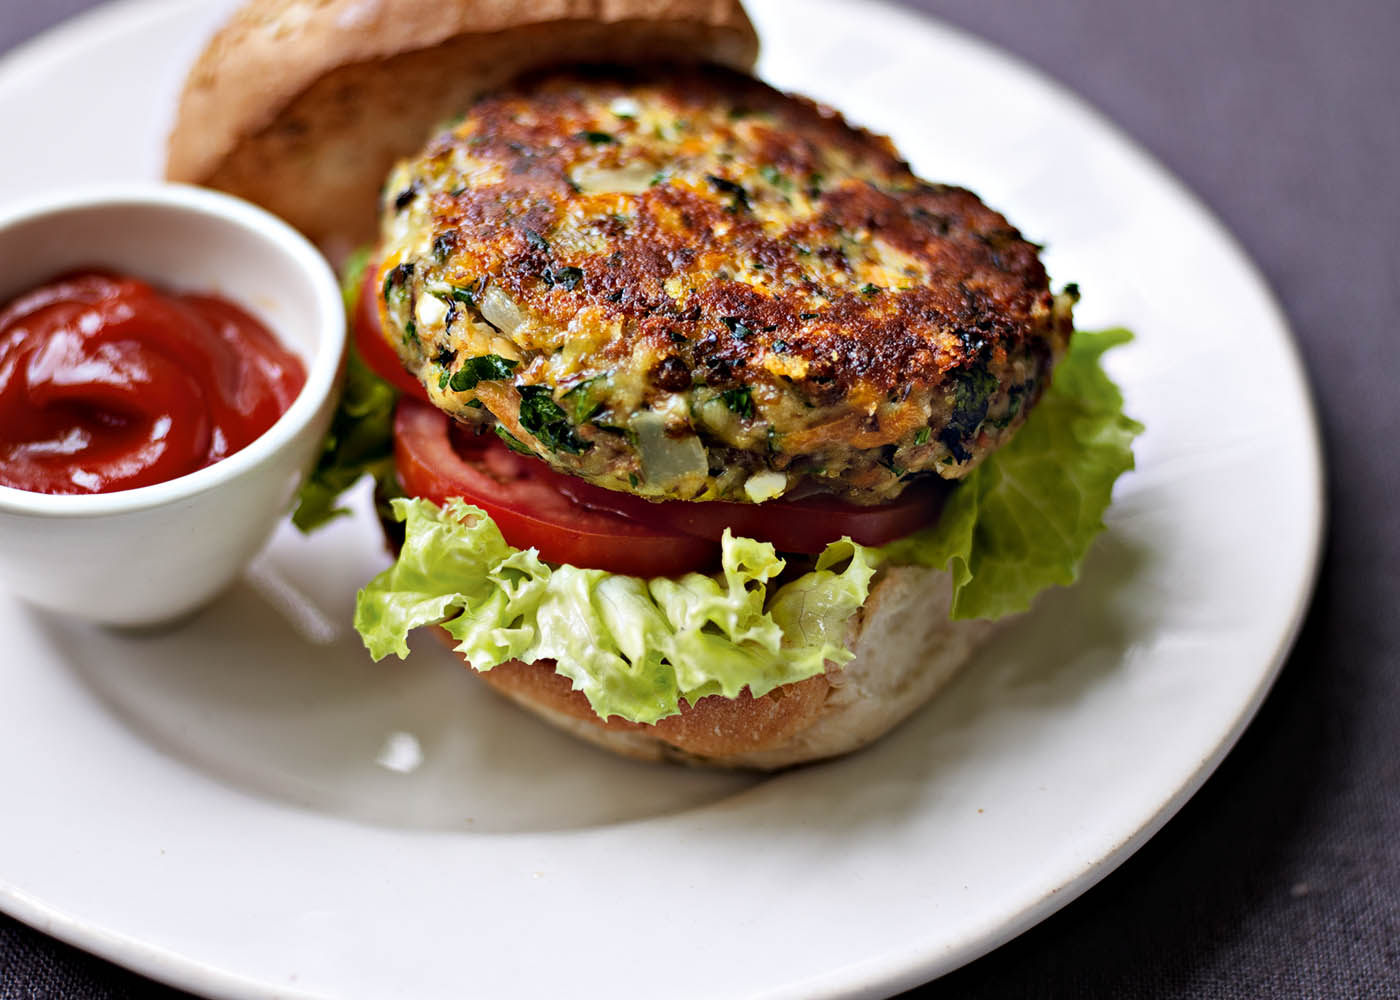 Lentil, chickpea, cheddar and onion burgers | FOODWISE